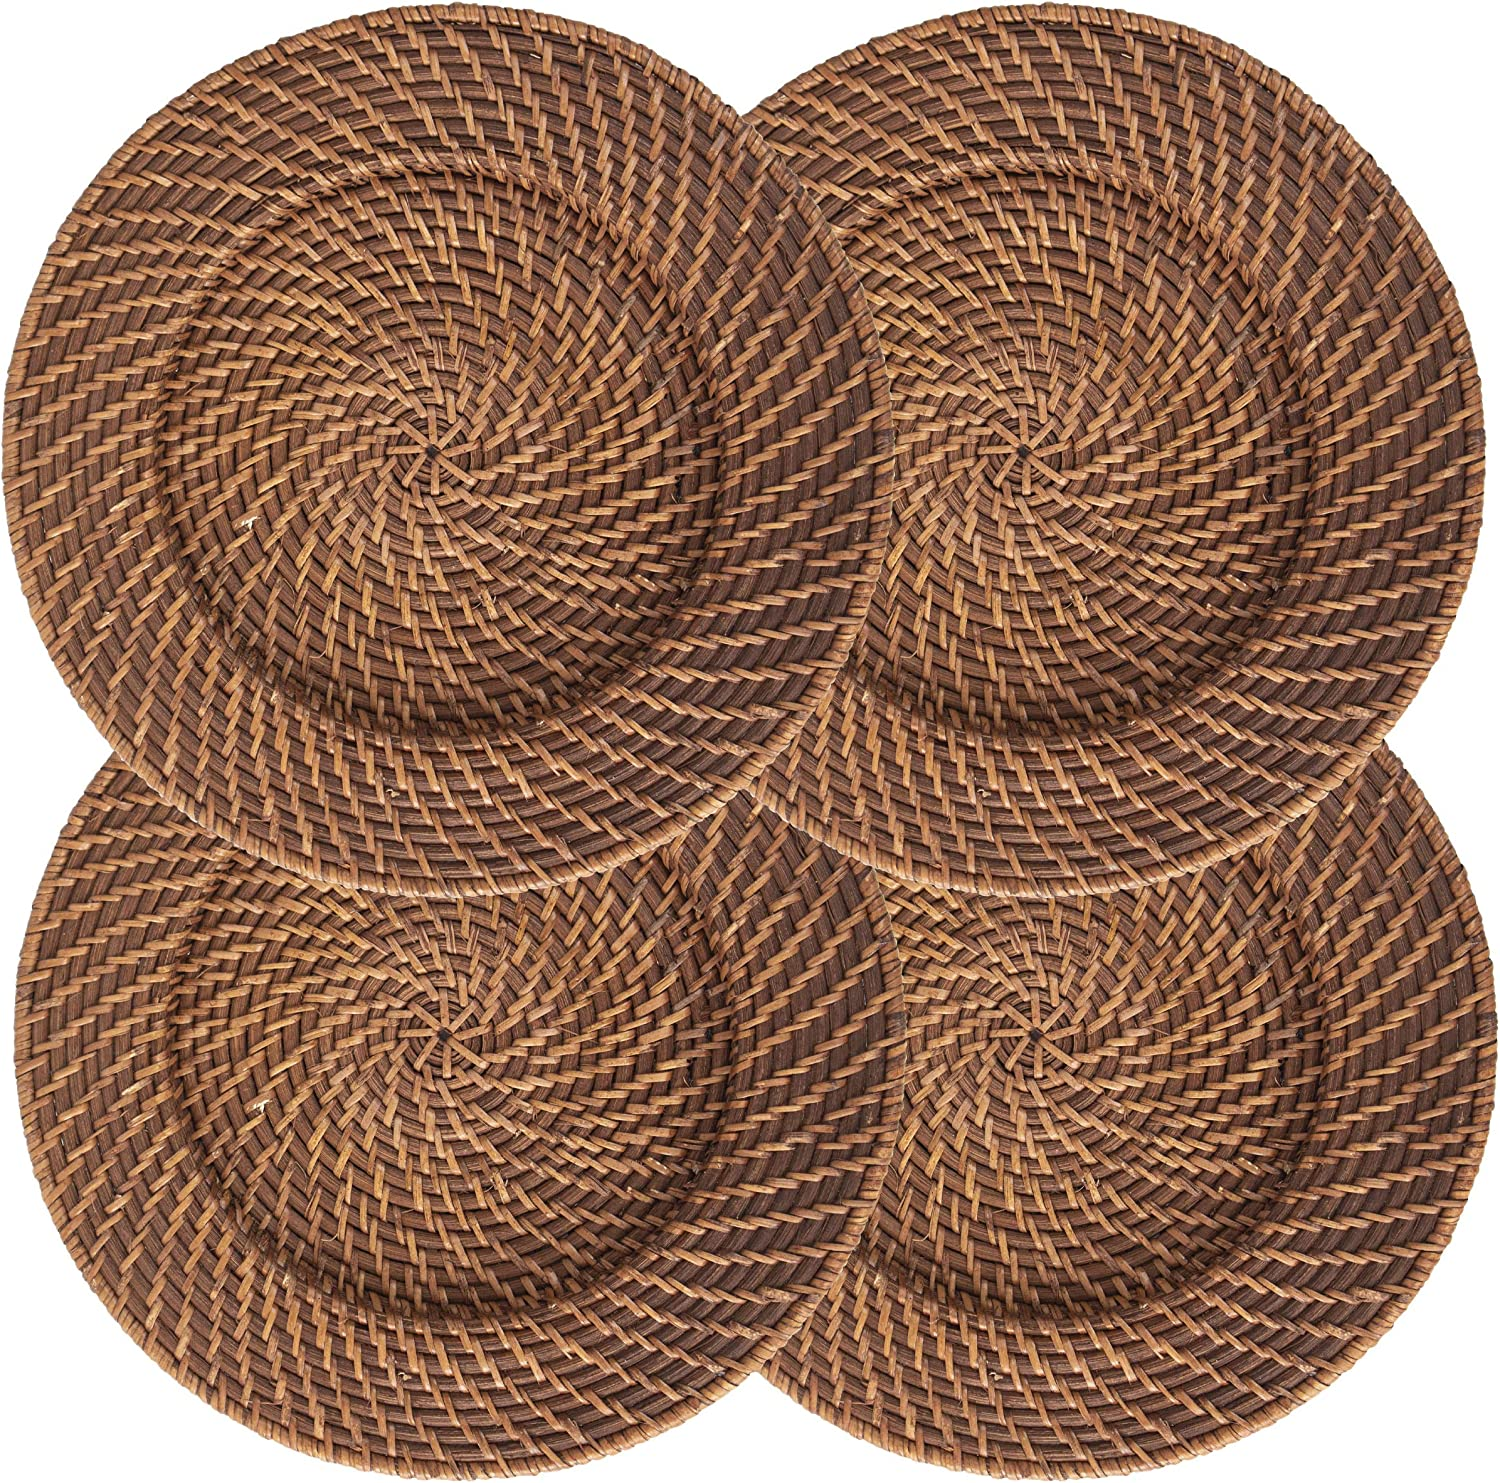   Set of 4 Pack Wicker Charger Plates for Dinner, Party, Wedding   Woven Rustic Dinnerware Tableware Decoration Placemat Alternative (Brown): Charger & Service Plates